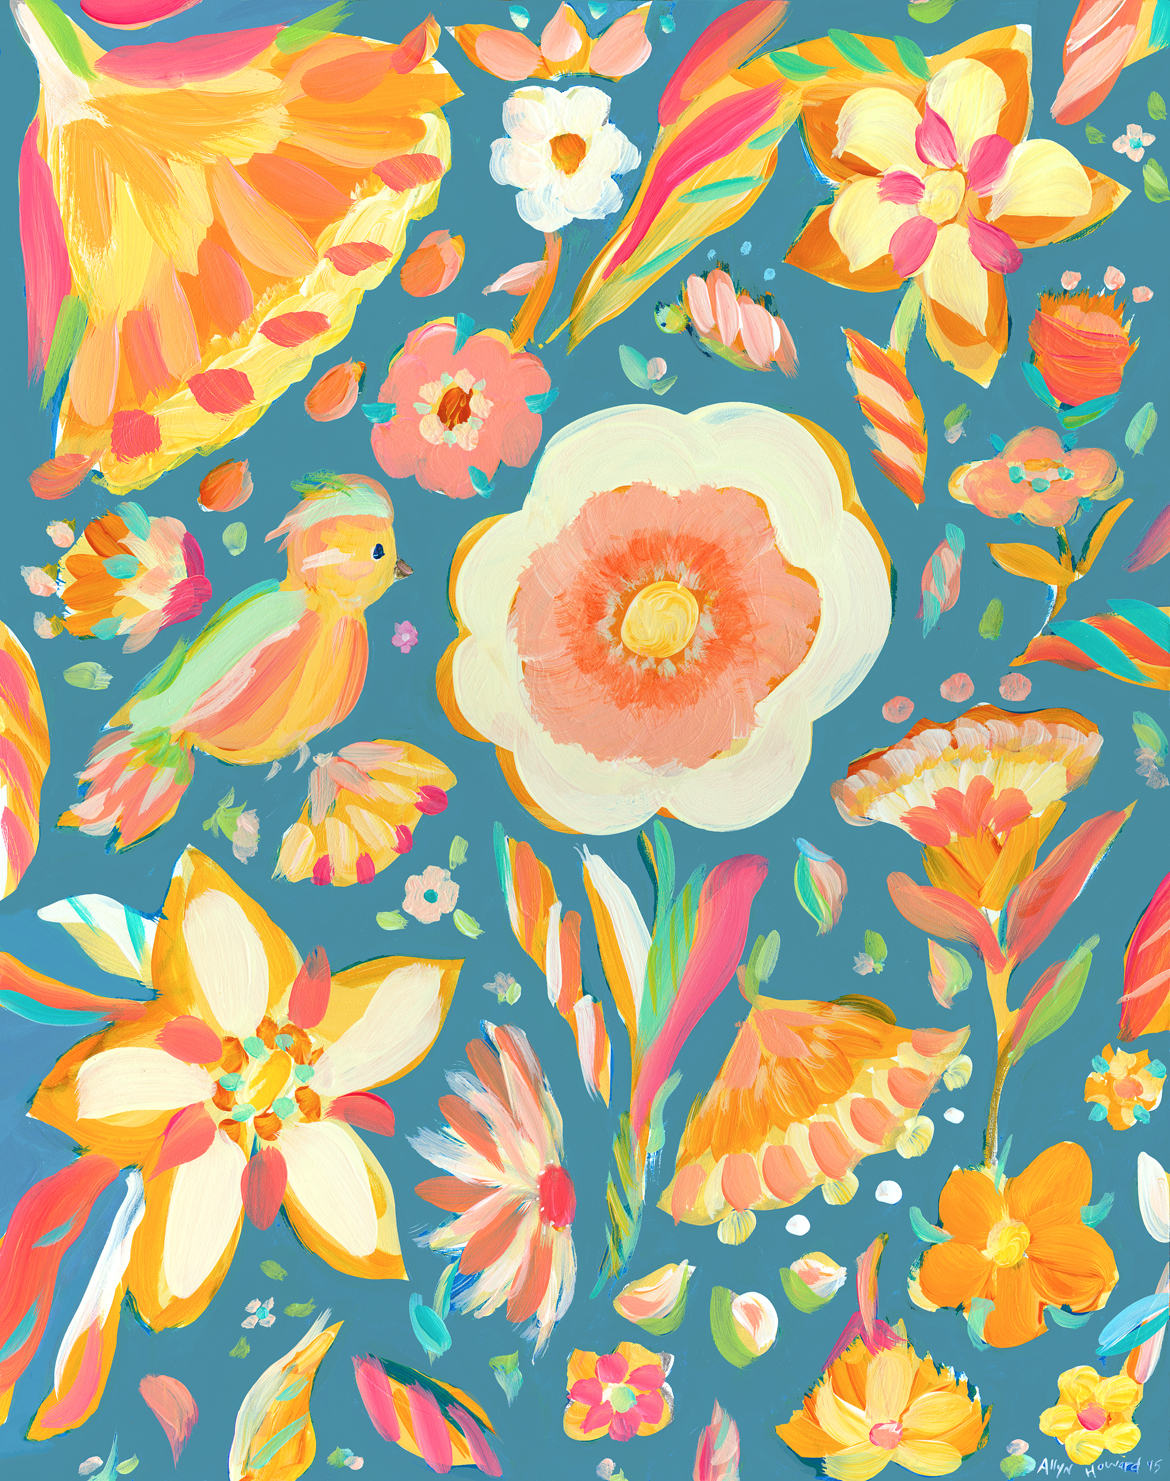 6 Tropical_delight_floral_Allyn_Howard.jpg